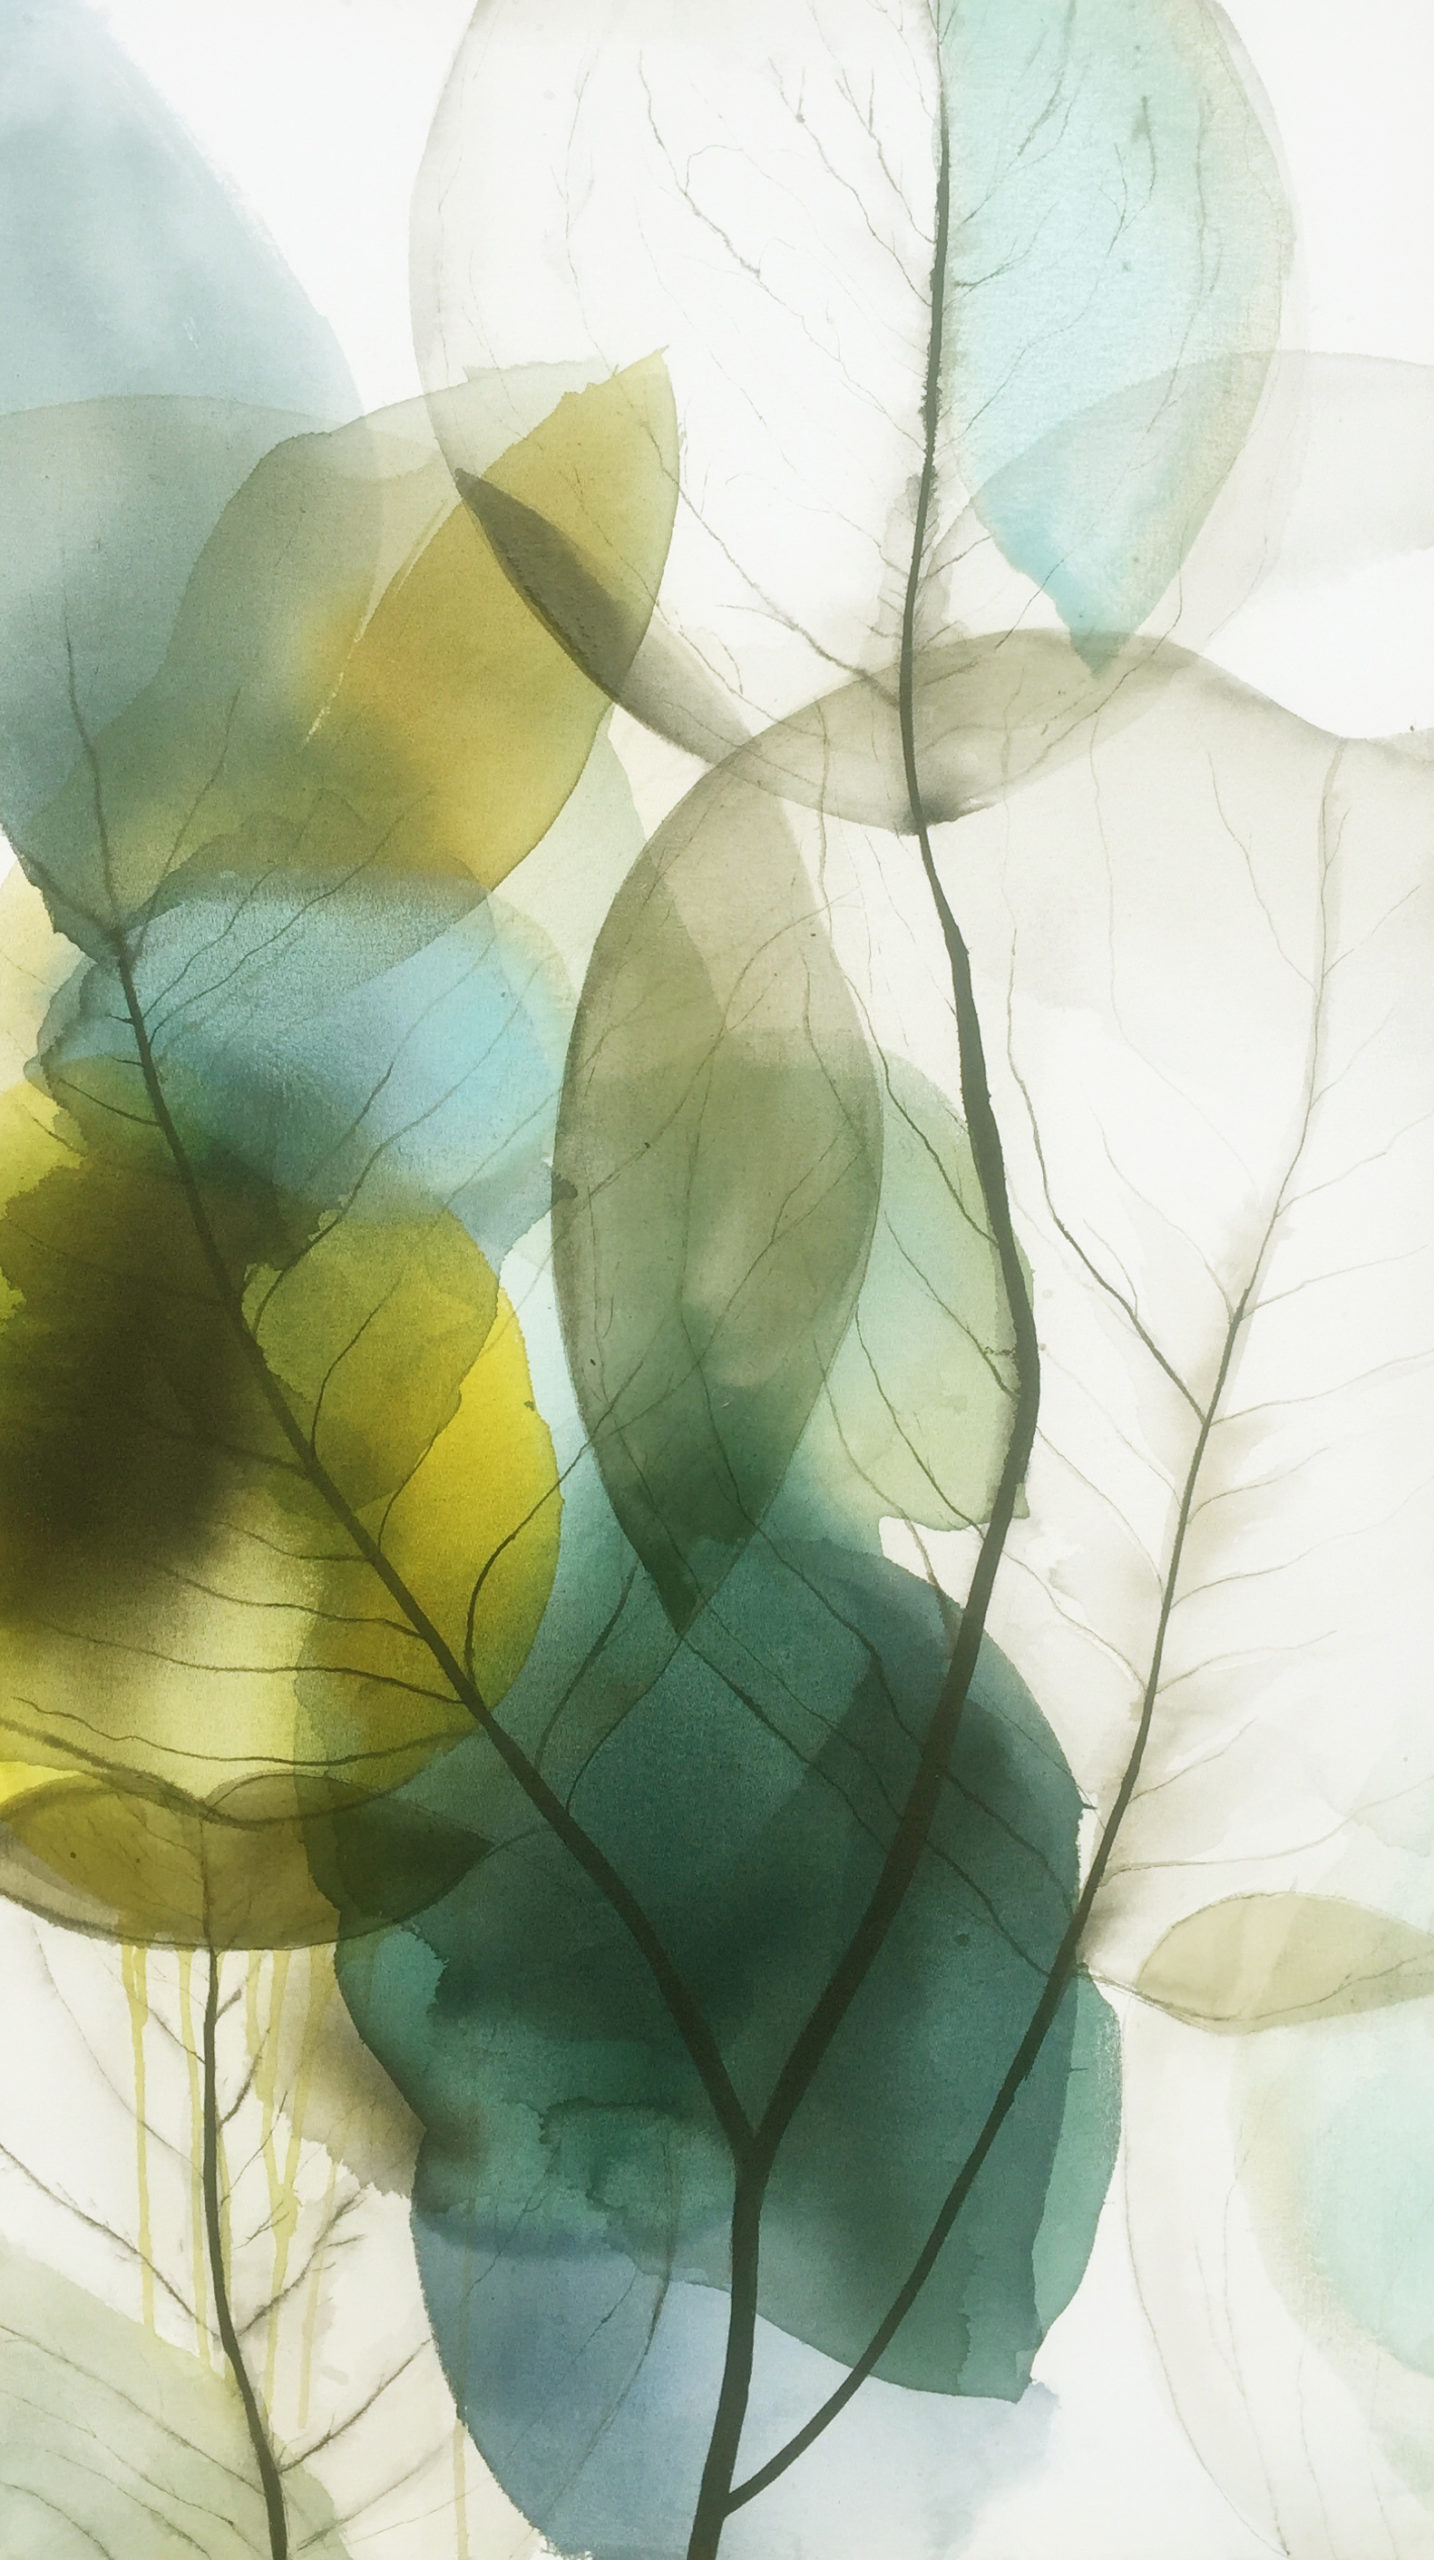 Vicky Sanders Abstract Botanical - Diaphanous